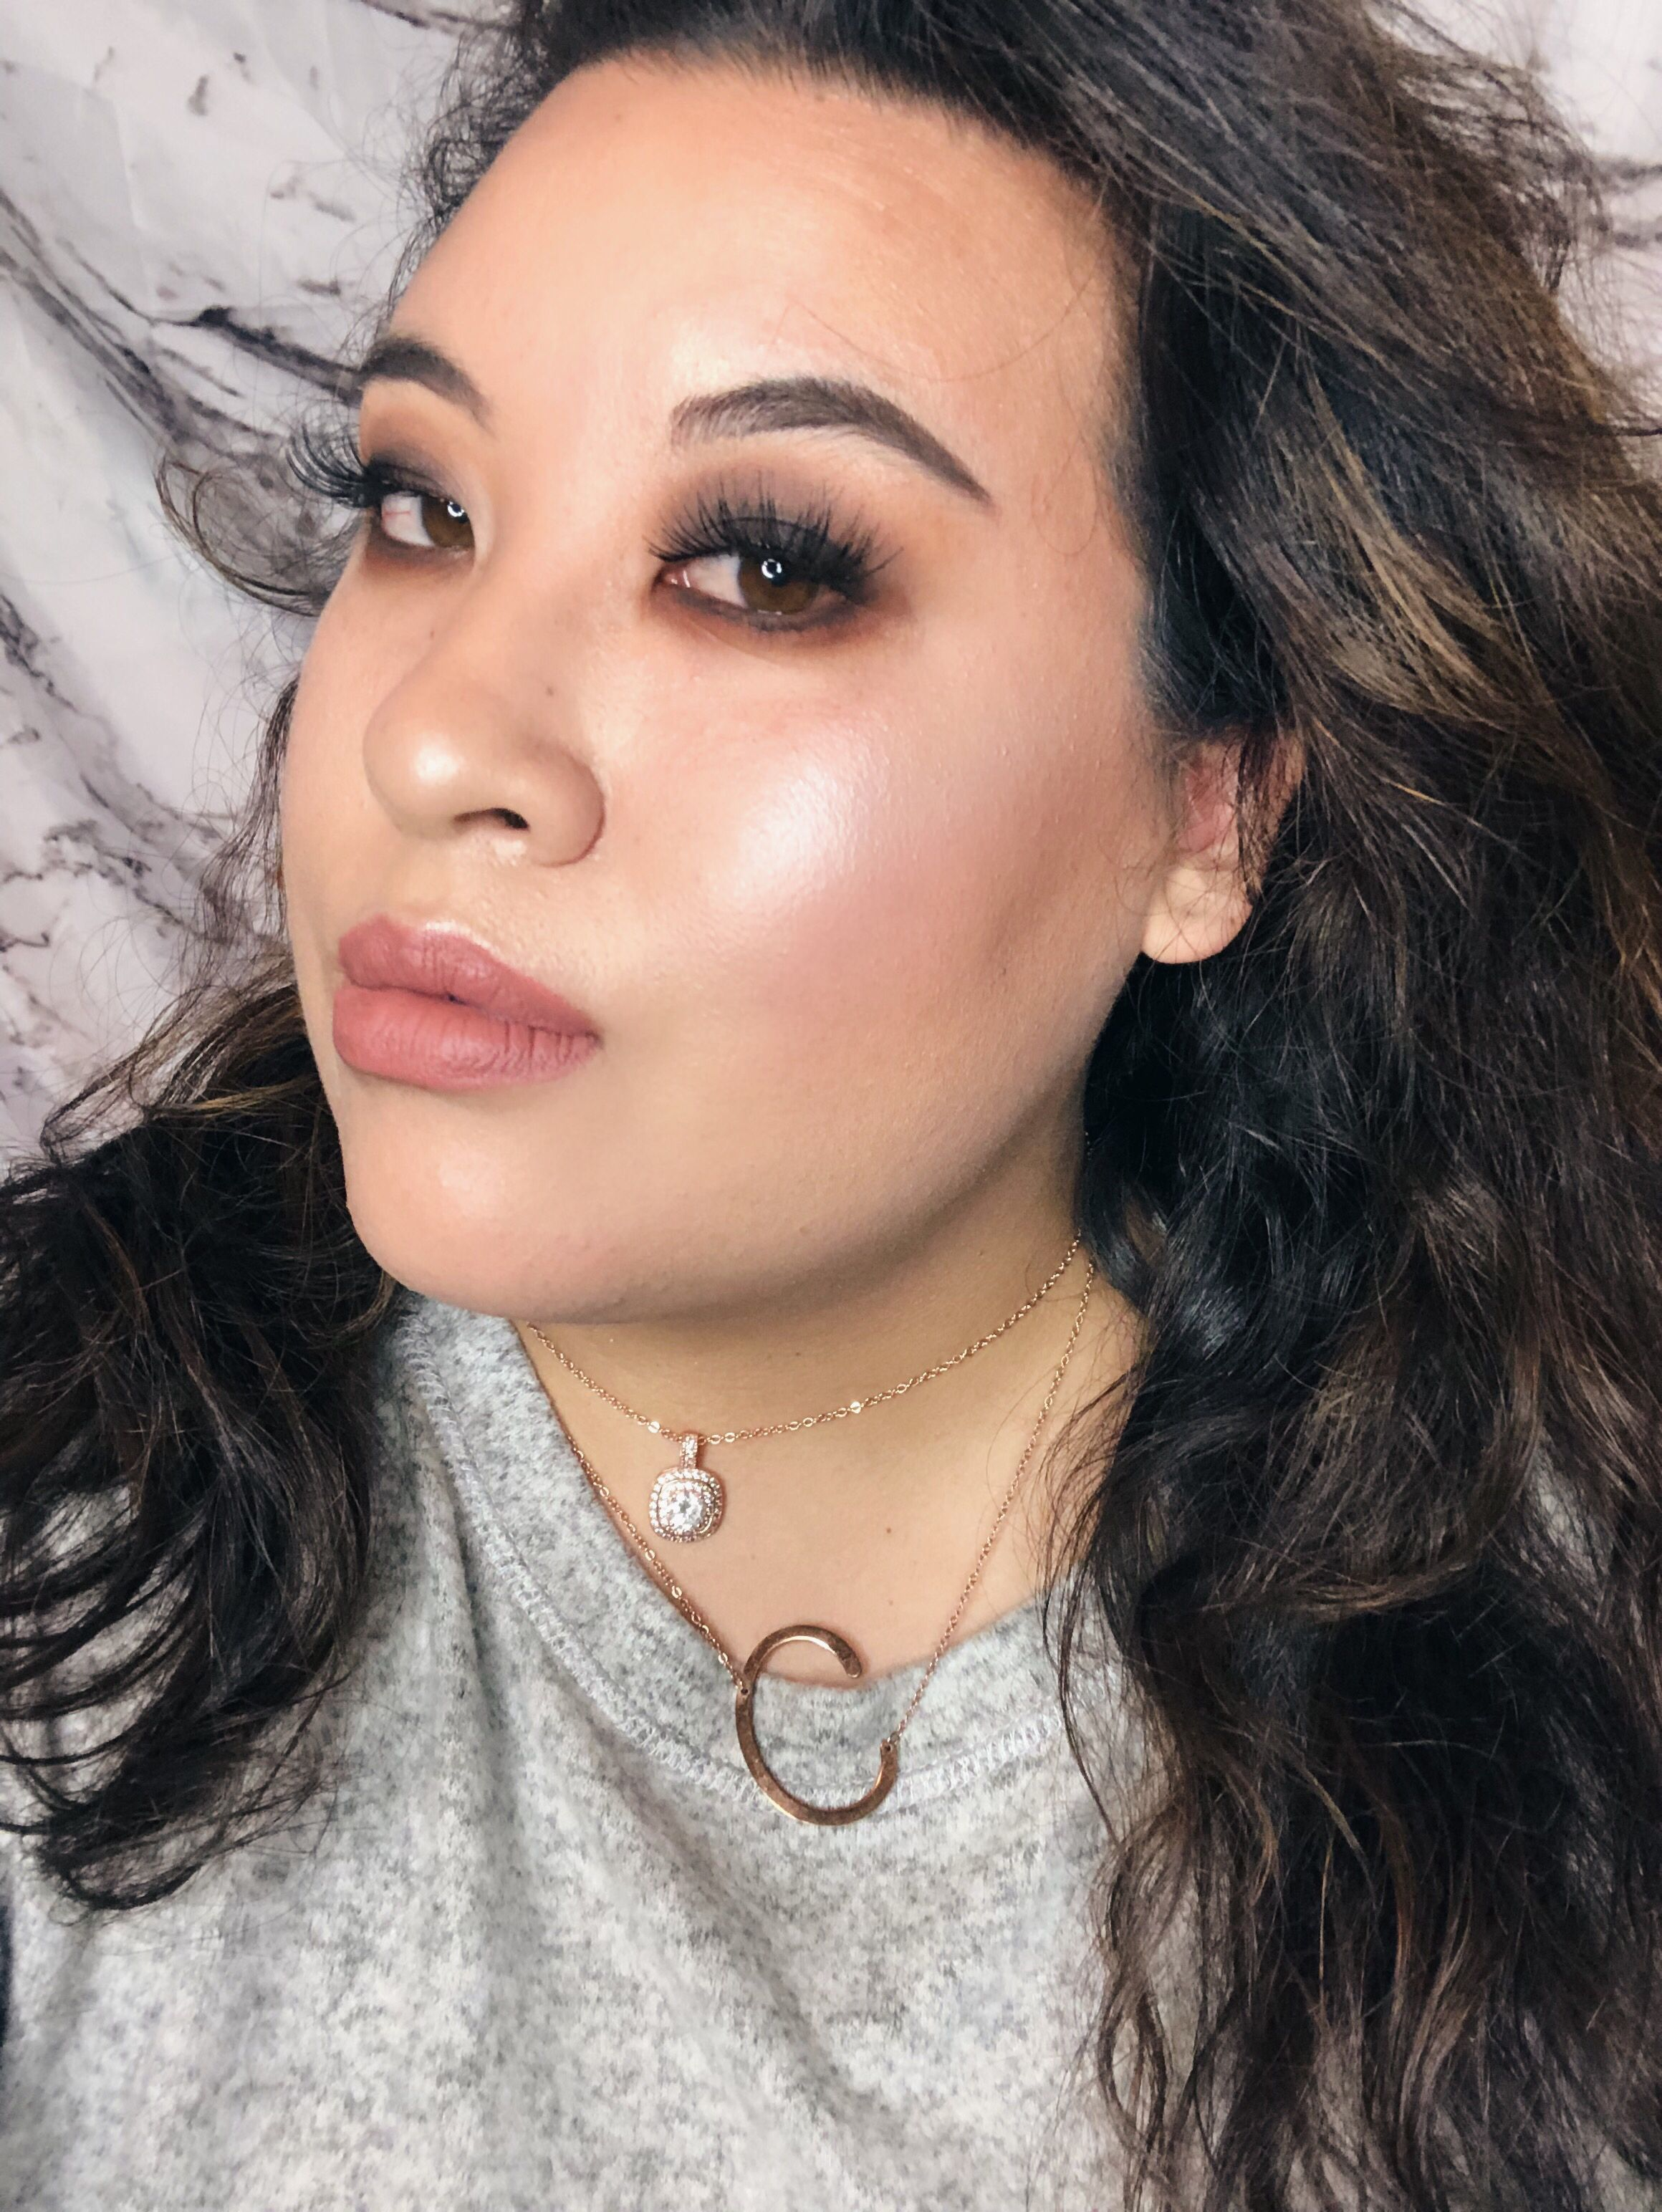 Pin by CRYSTYNA on PhillyFashionGirl Makeup inspiration